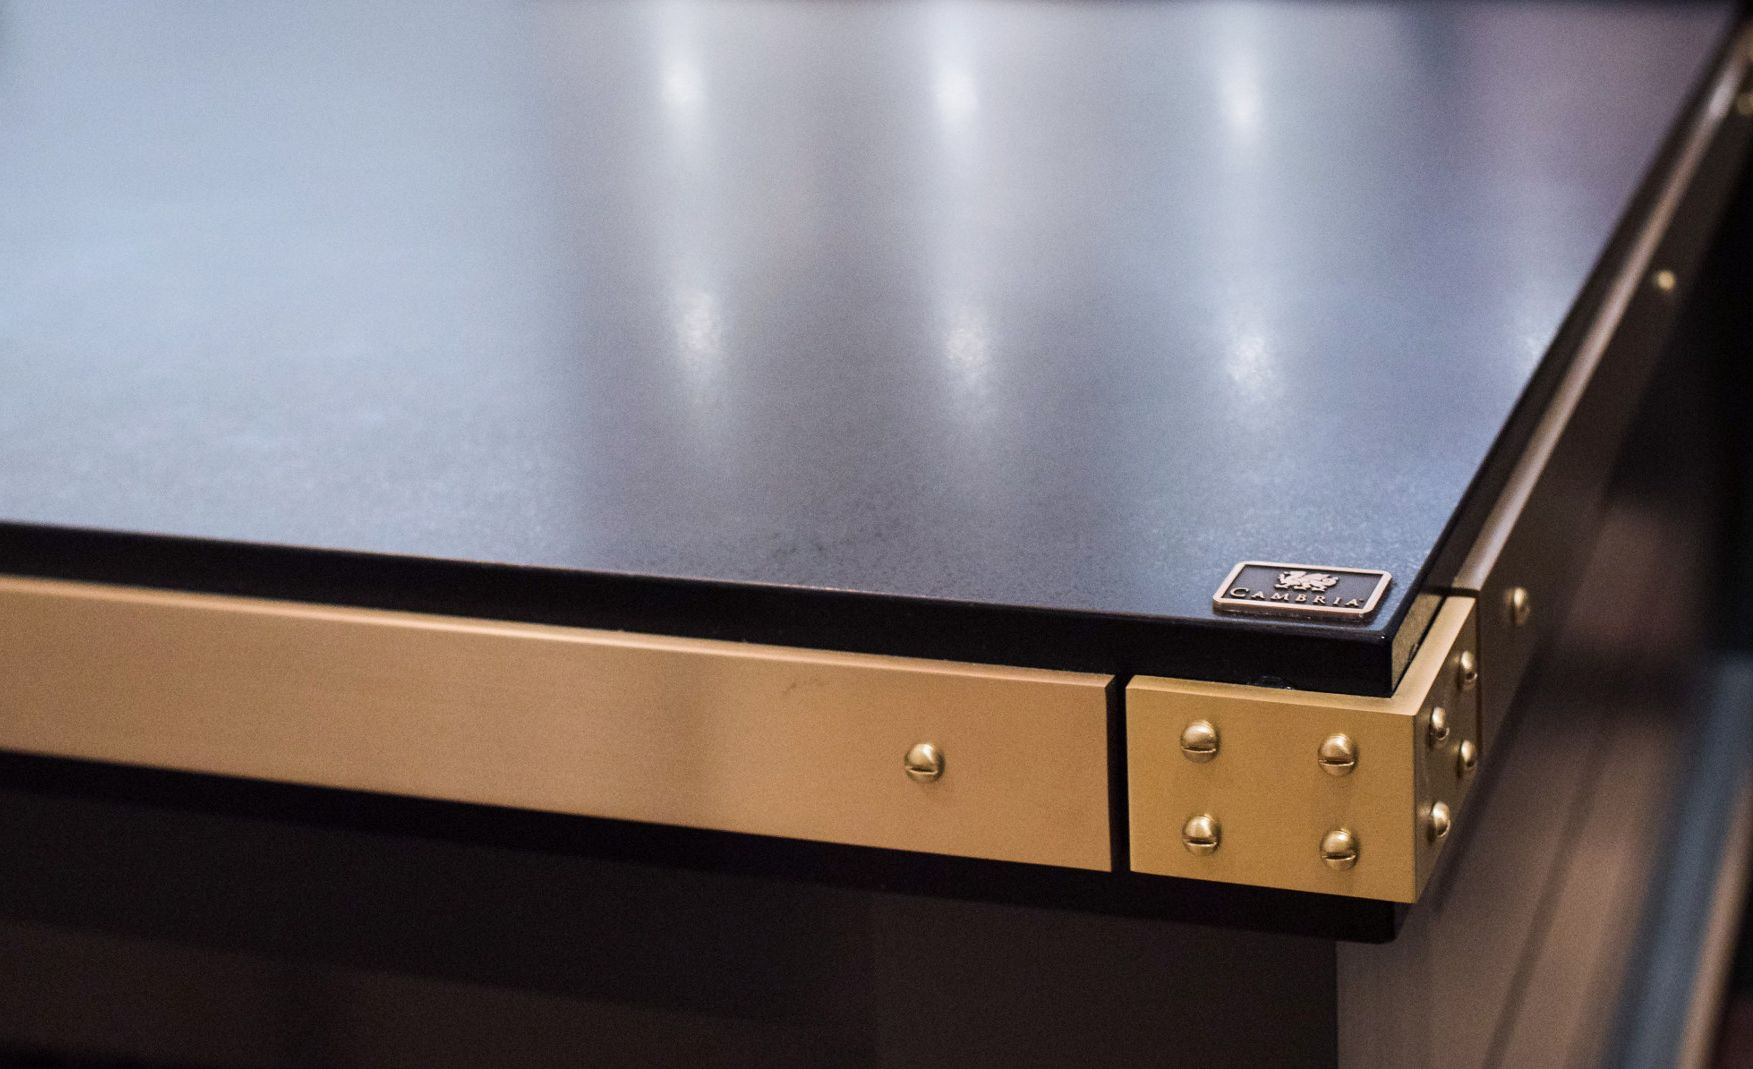 Cambria Blackpool Matte countertops with a brass band edge detail.